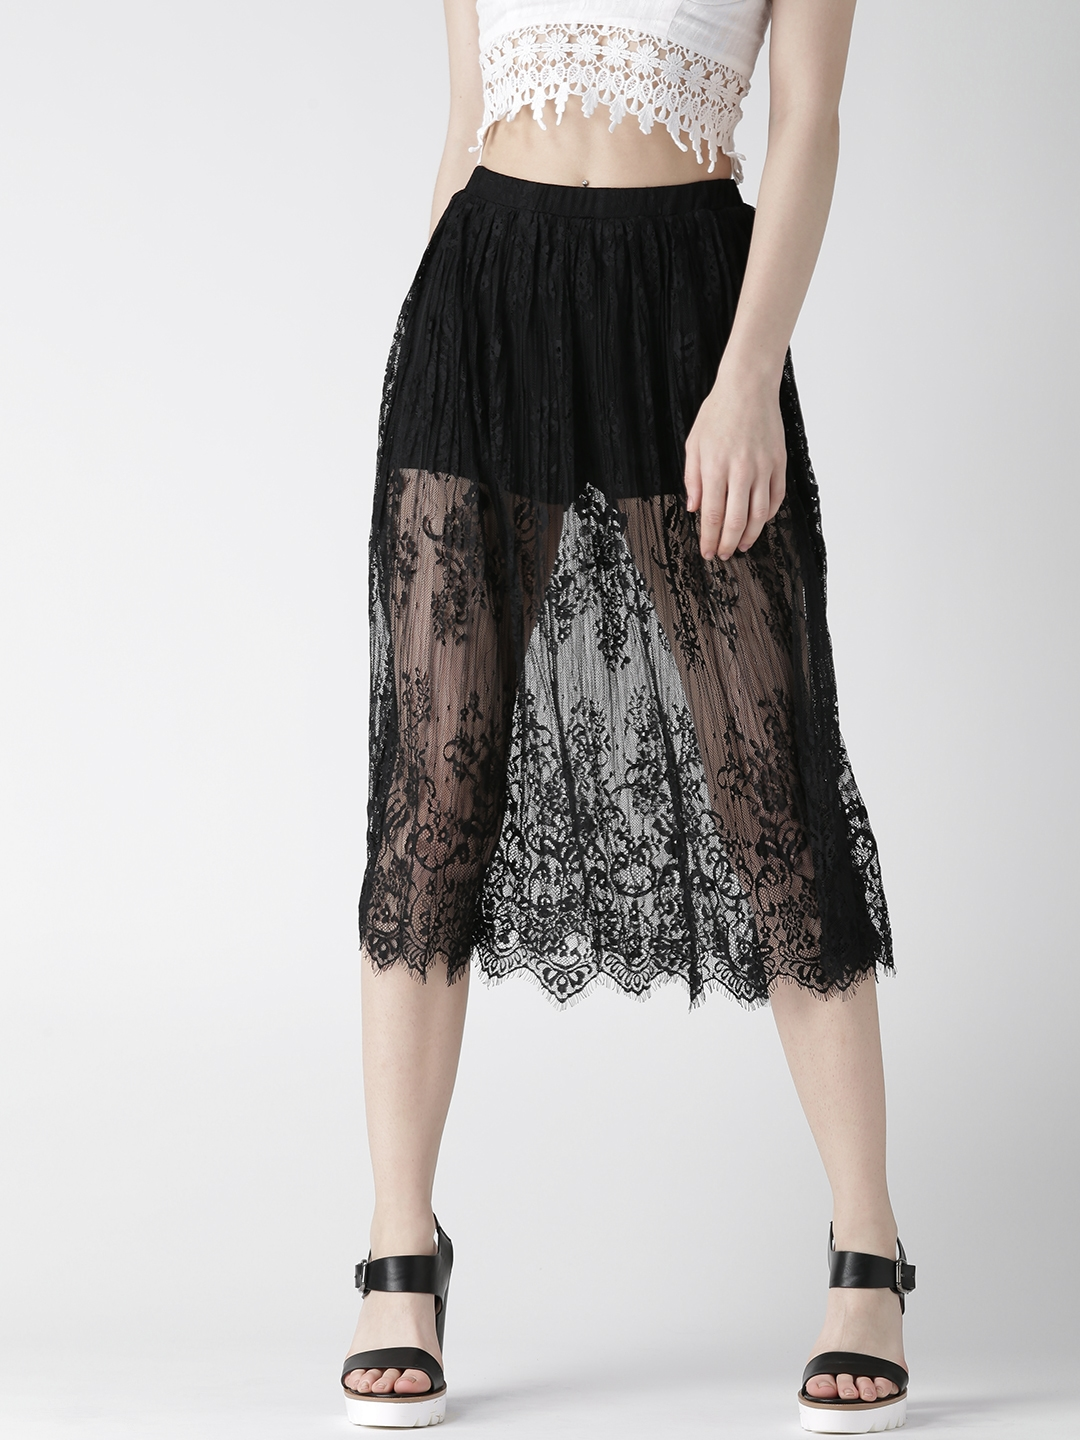 9f0d6f653f85 Buy FOREVER 21 Black Lace Midi Skirt - Skirts for Women 1451065